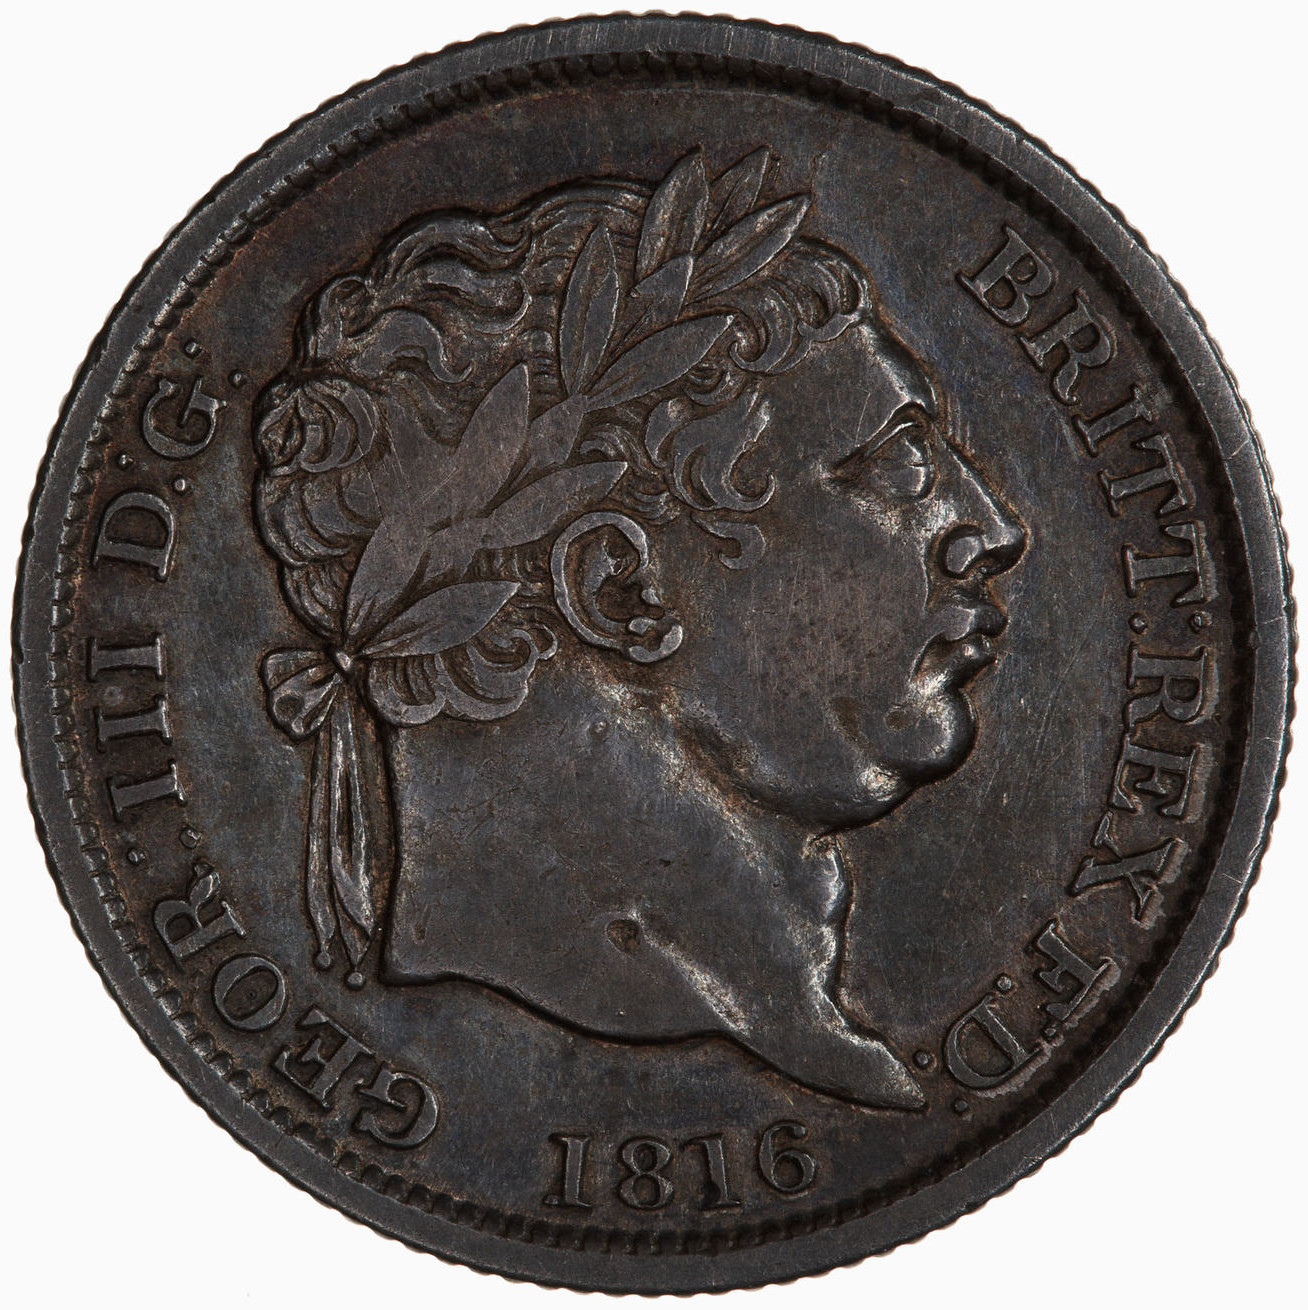 Shilling: Photo Coin - Shilling, George III, Great Britain, 1816